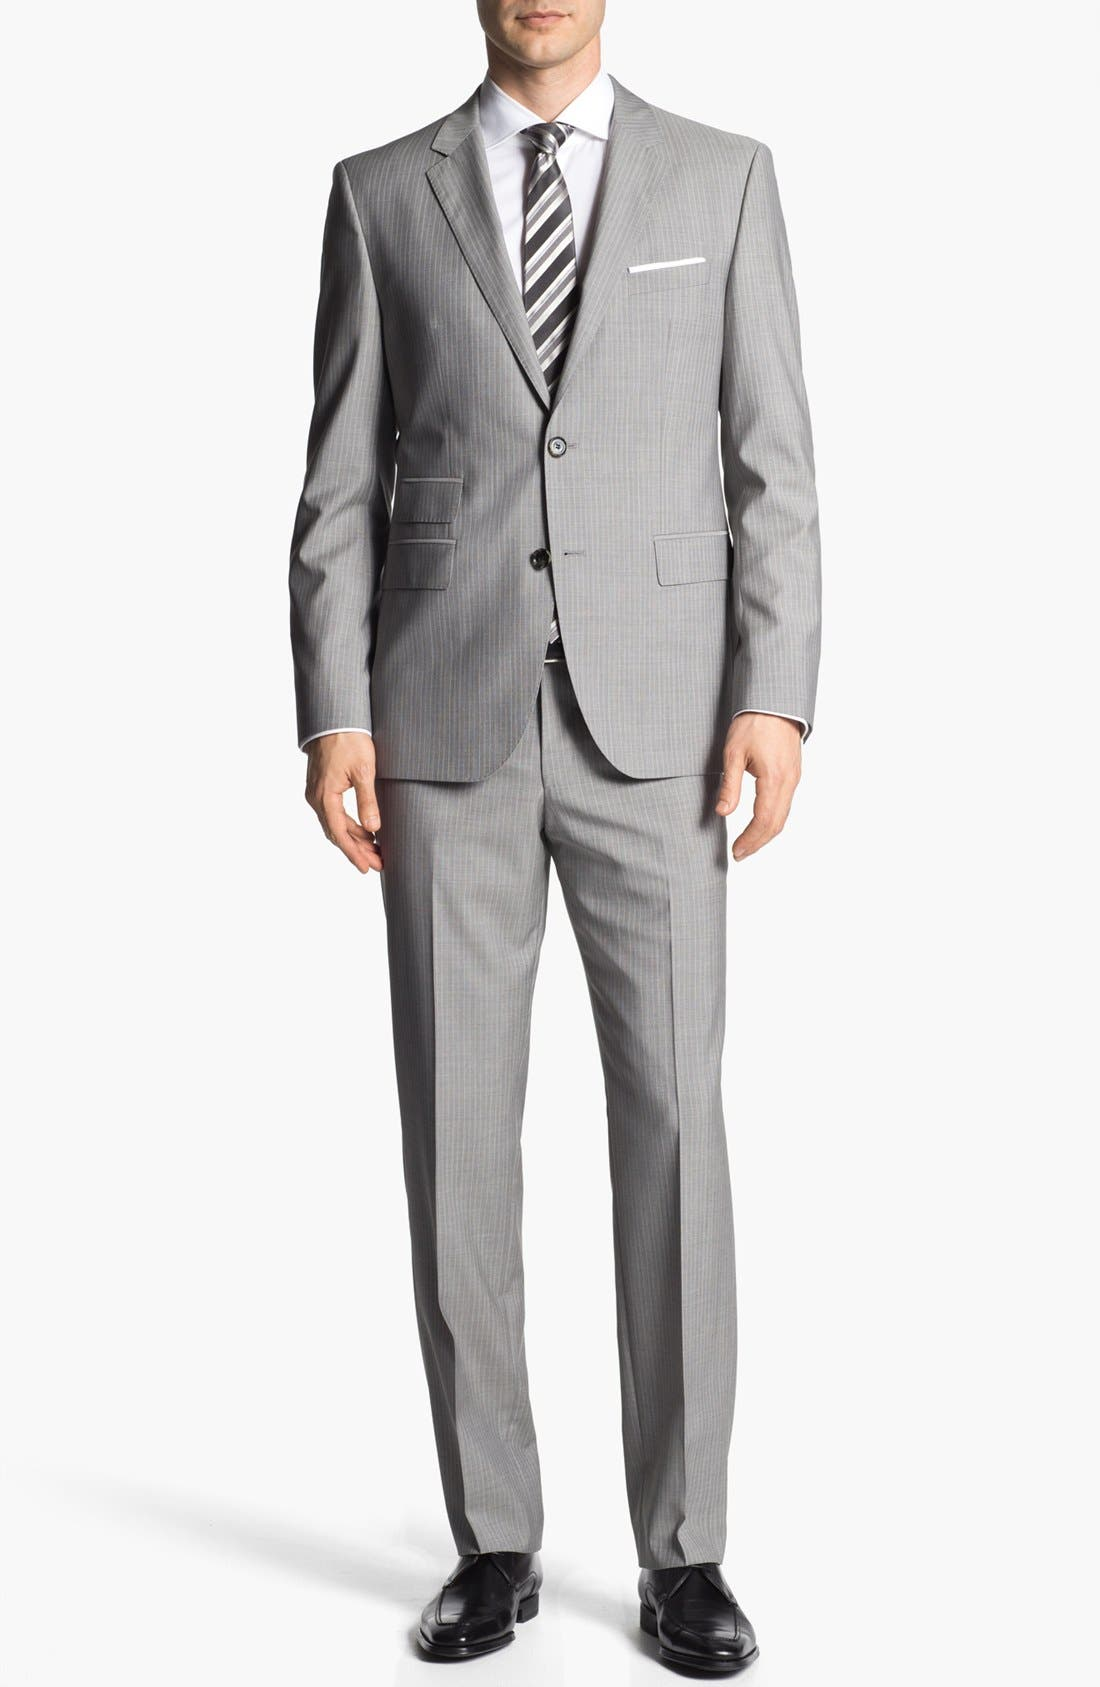 Main Image - BOSS HUGO BOSS 'The Sweet/Sharp' Trim Fit Stripe Suit